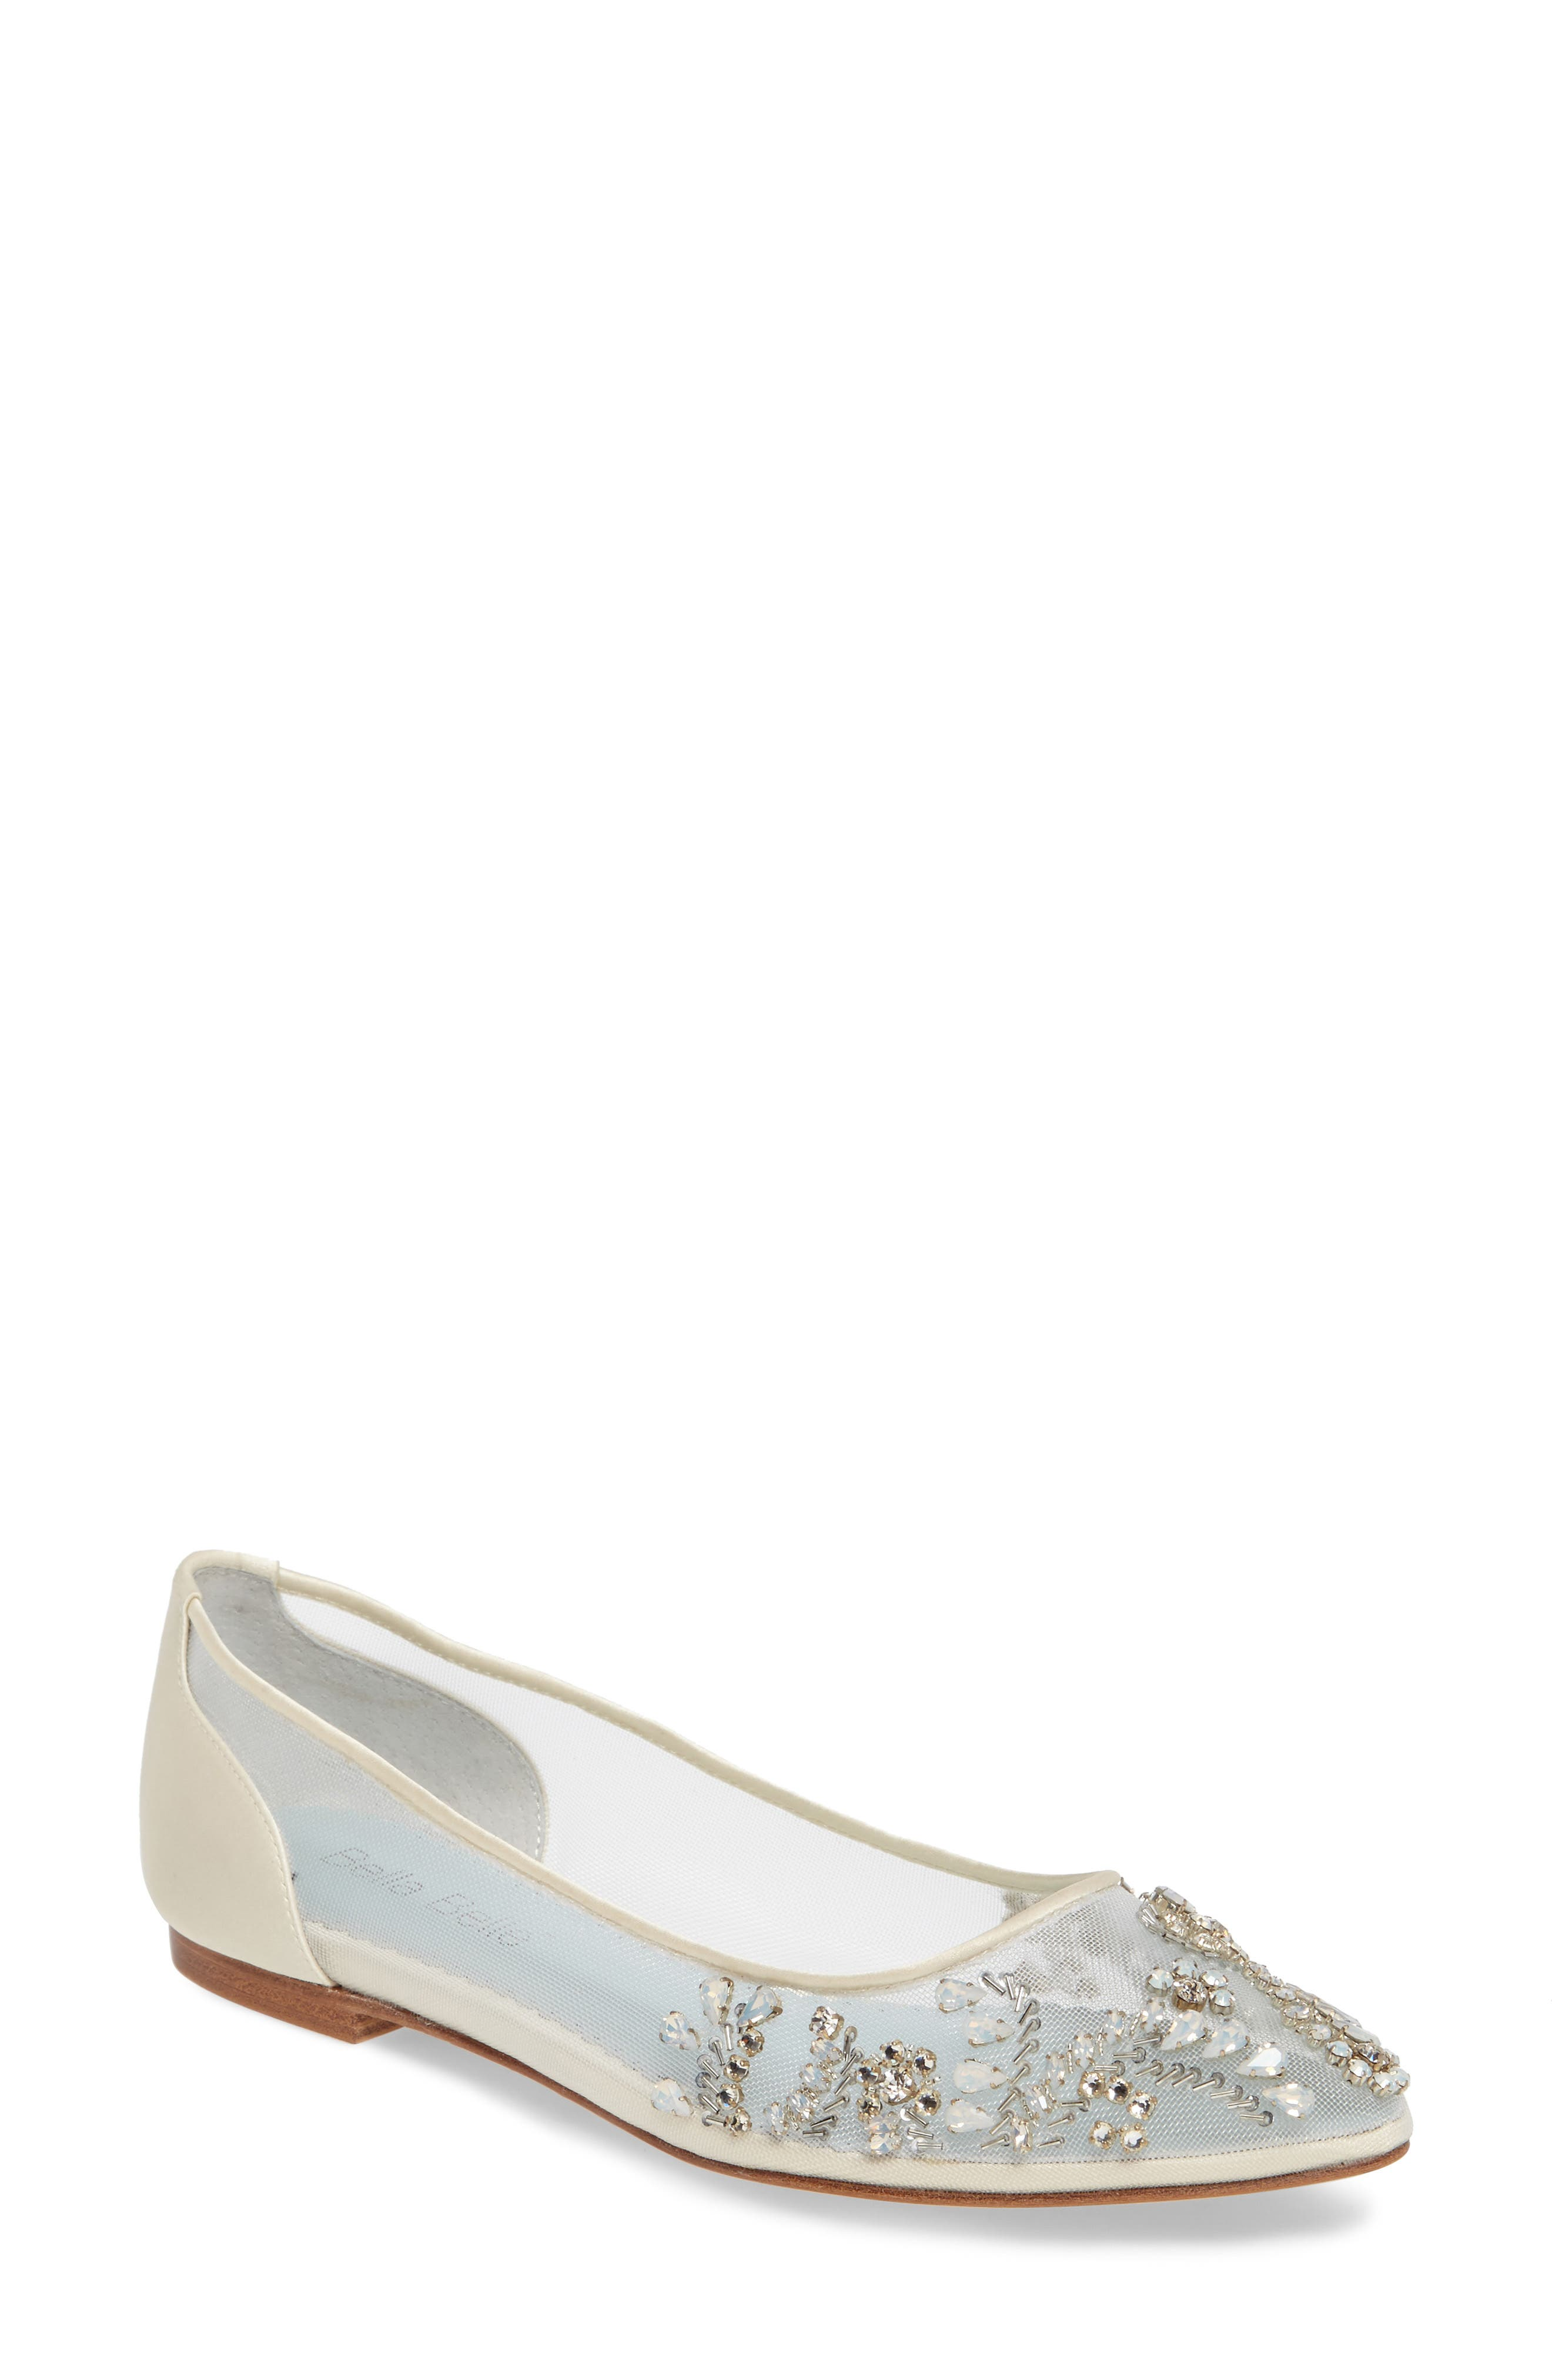 BELLA BELLE, Willow Skimmer Flat, Main thumbnail 1, color, IVORY FABRIC